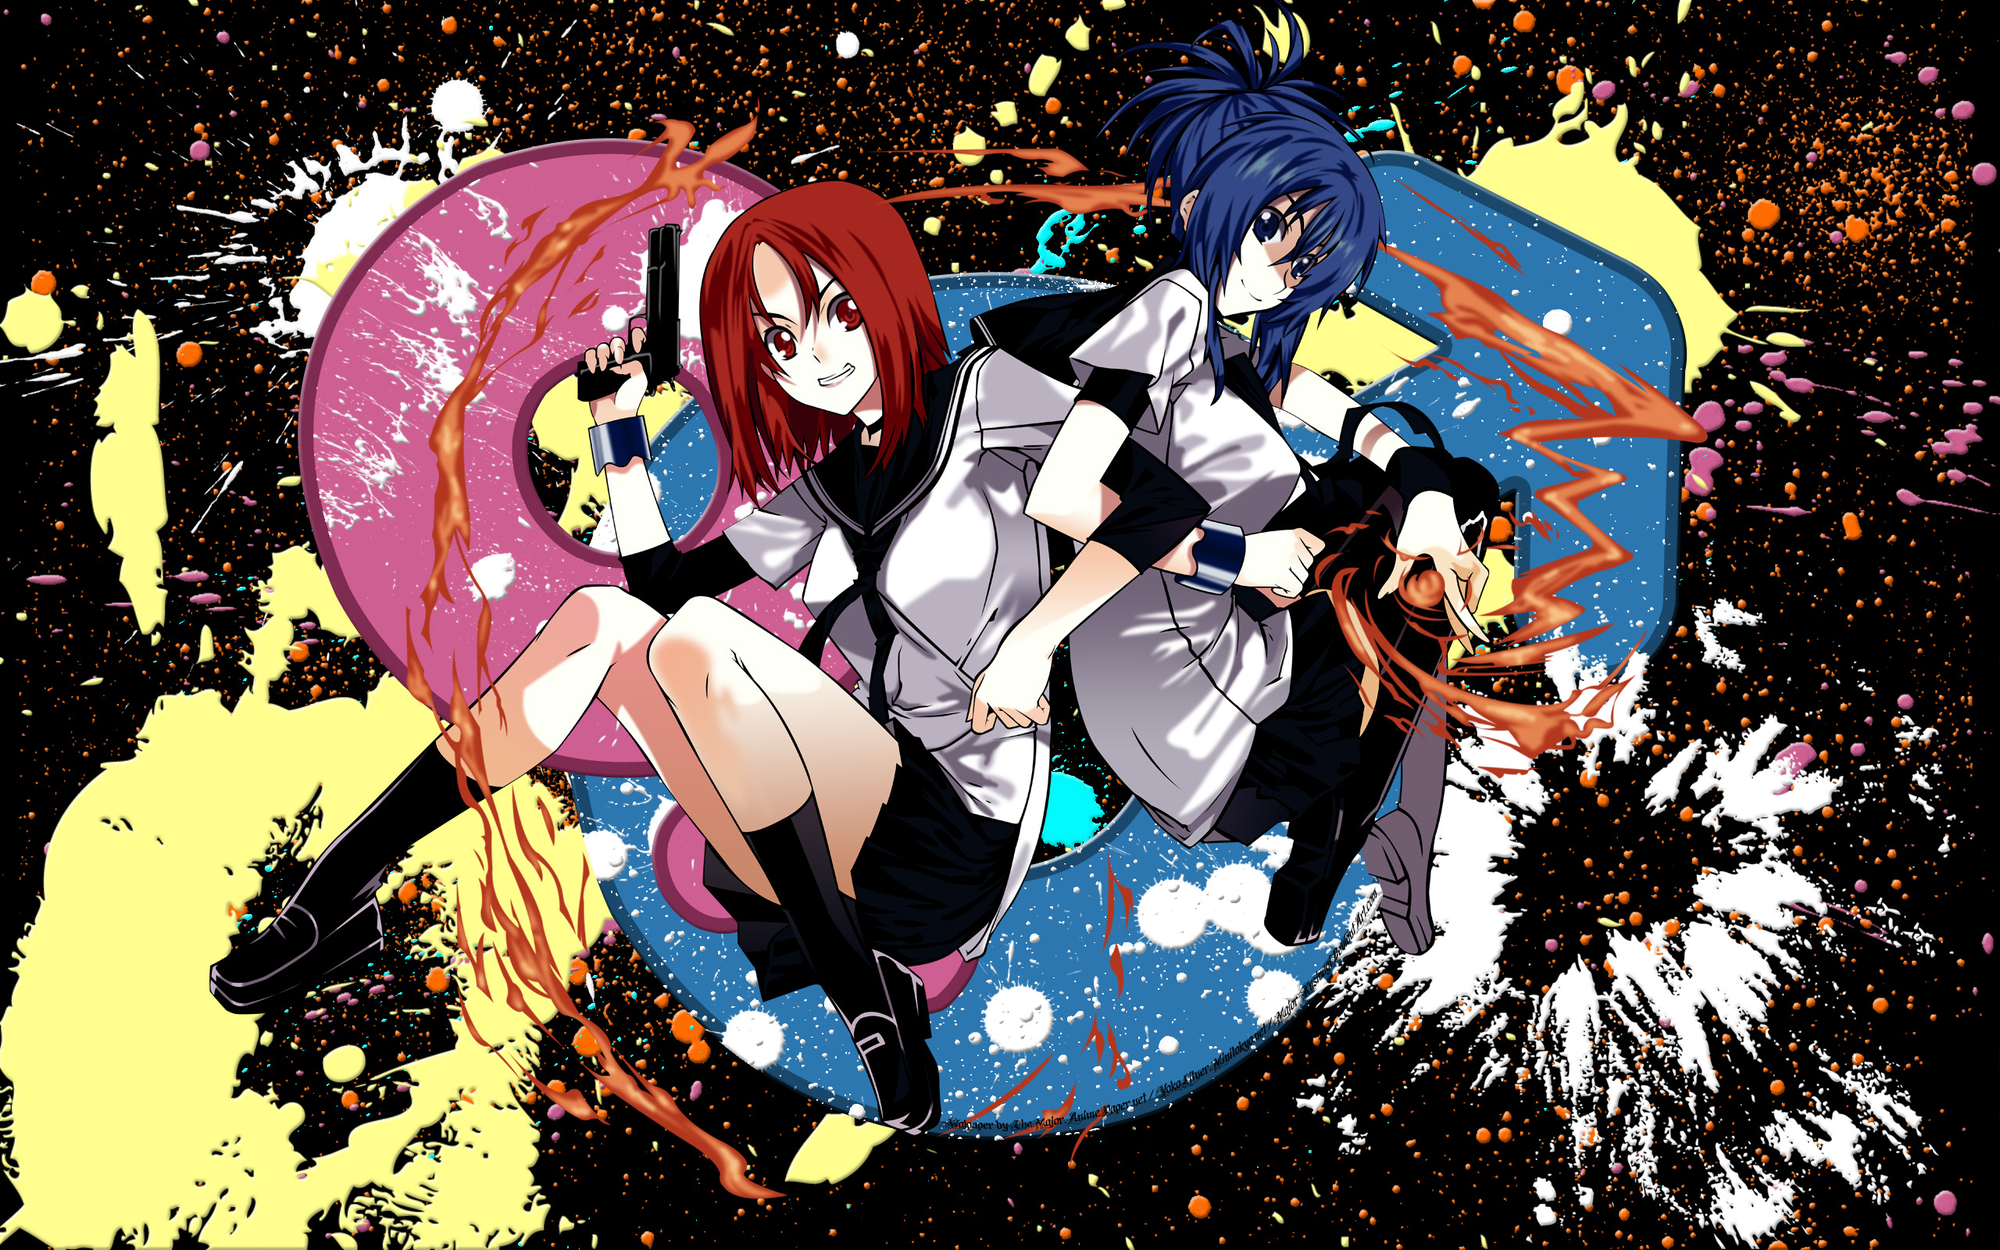 blue_eyes blue_hair gun kampfer mishima_akane red_eyes red_hair seifuku senou_natsuru weapon